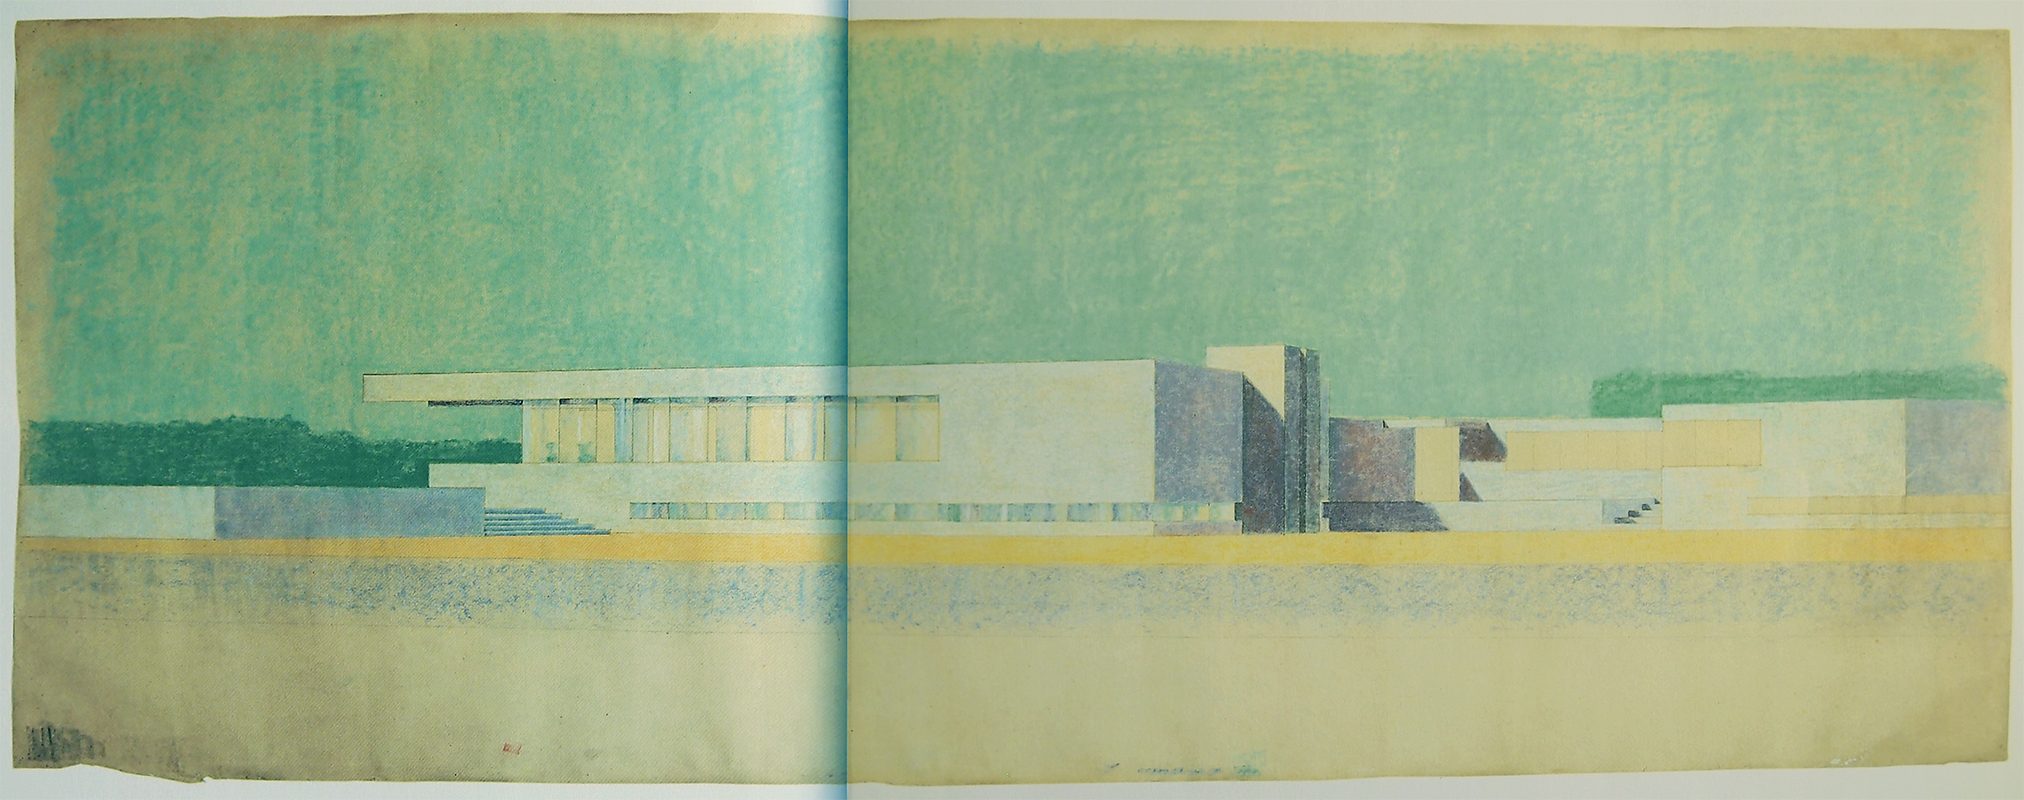 Mies van der Rohe. Envisioning Architecture (MoMA, New York, 2002) 1923, 60